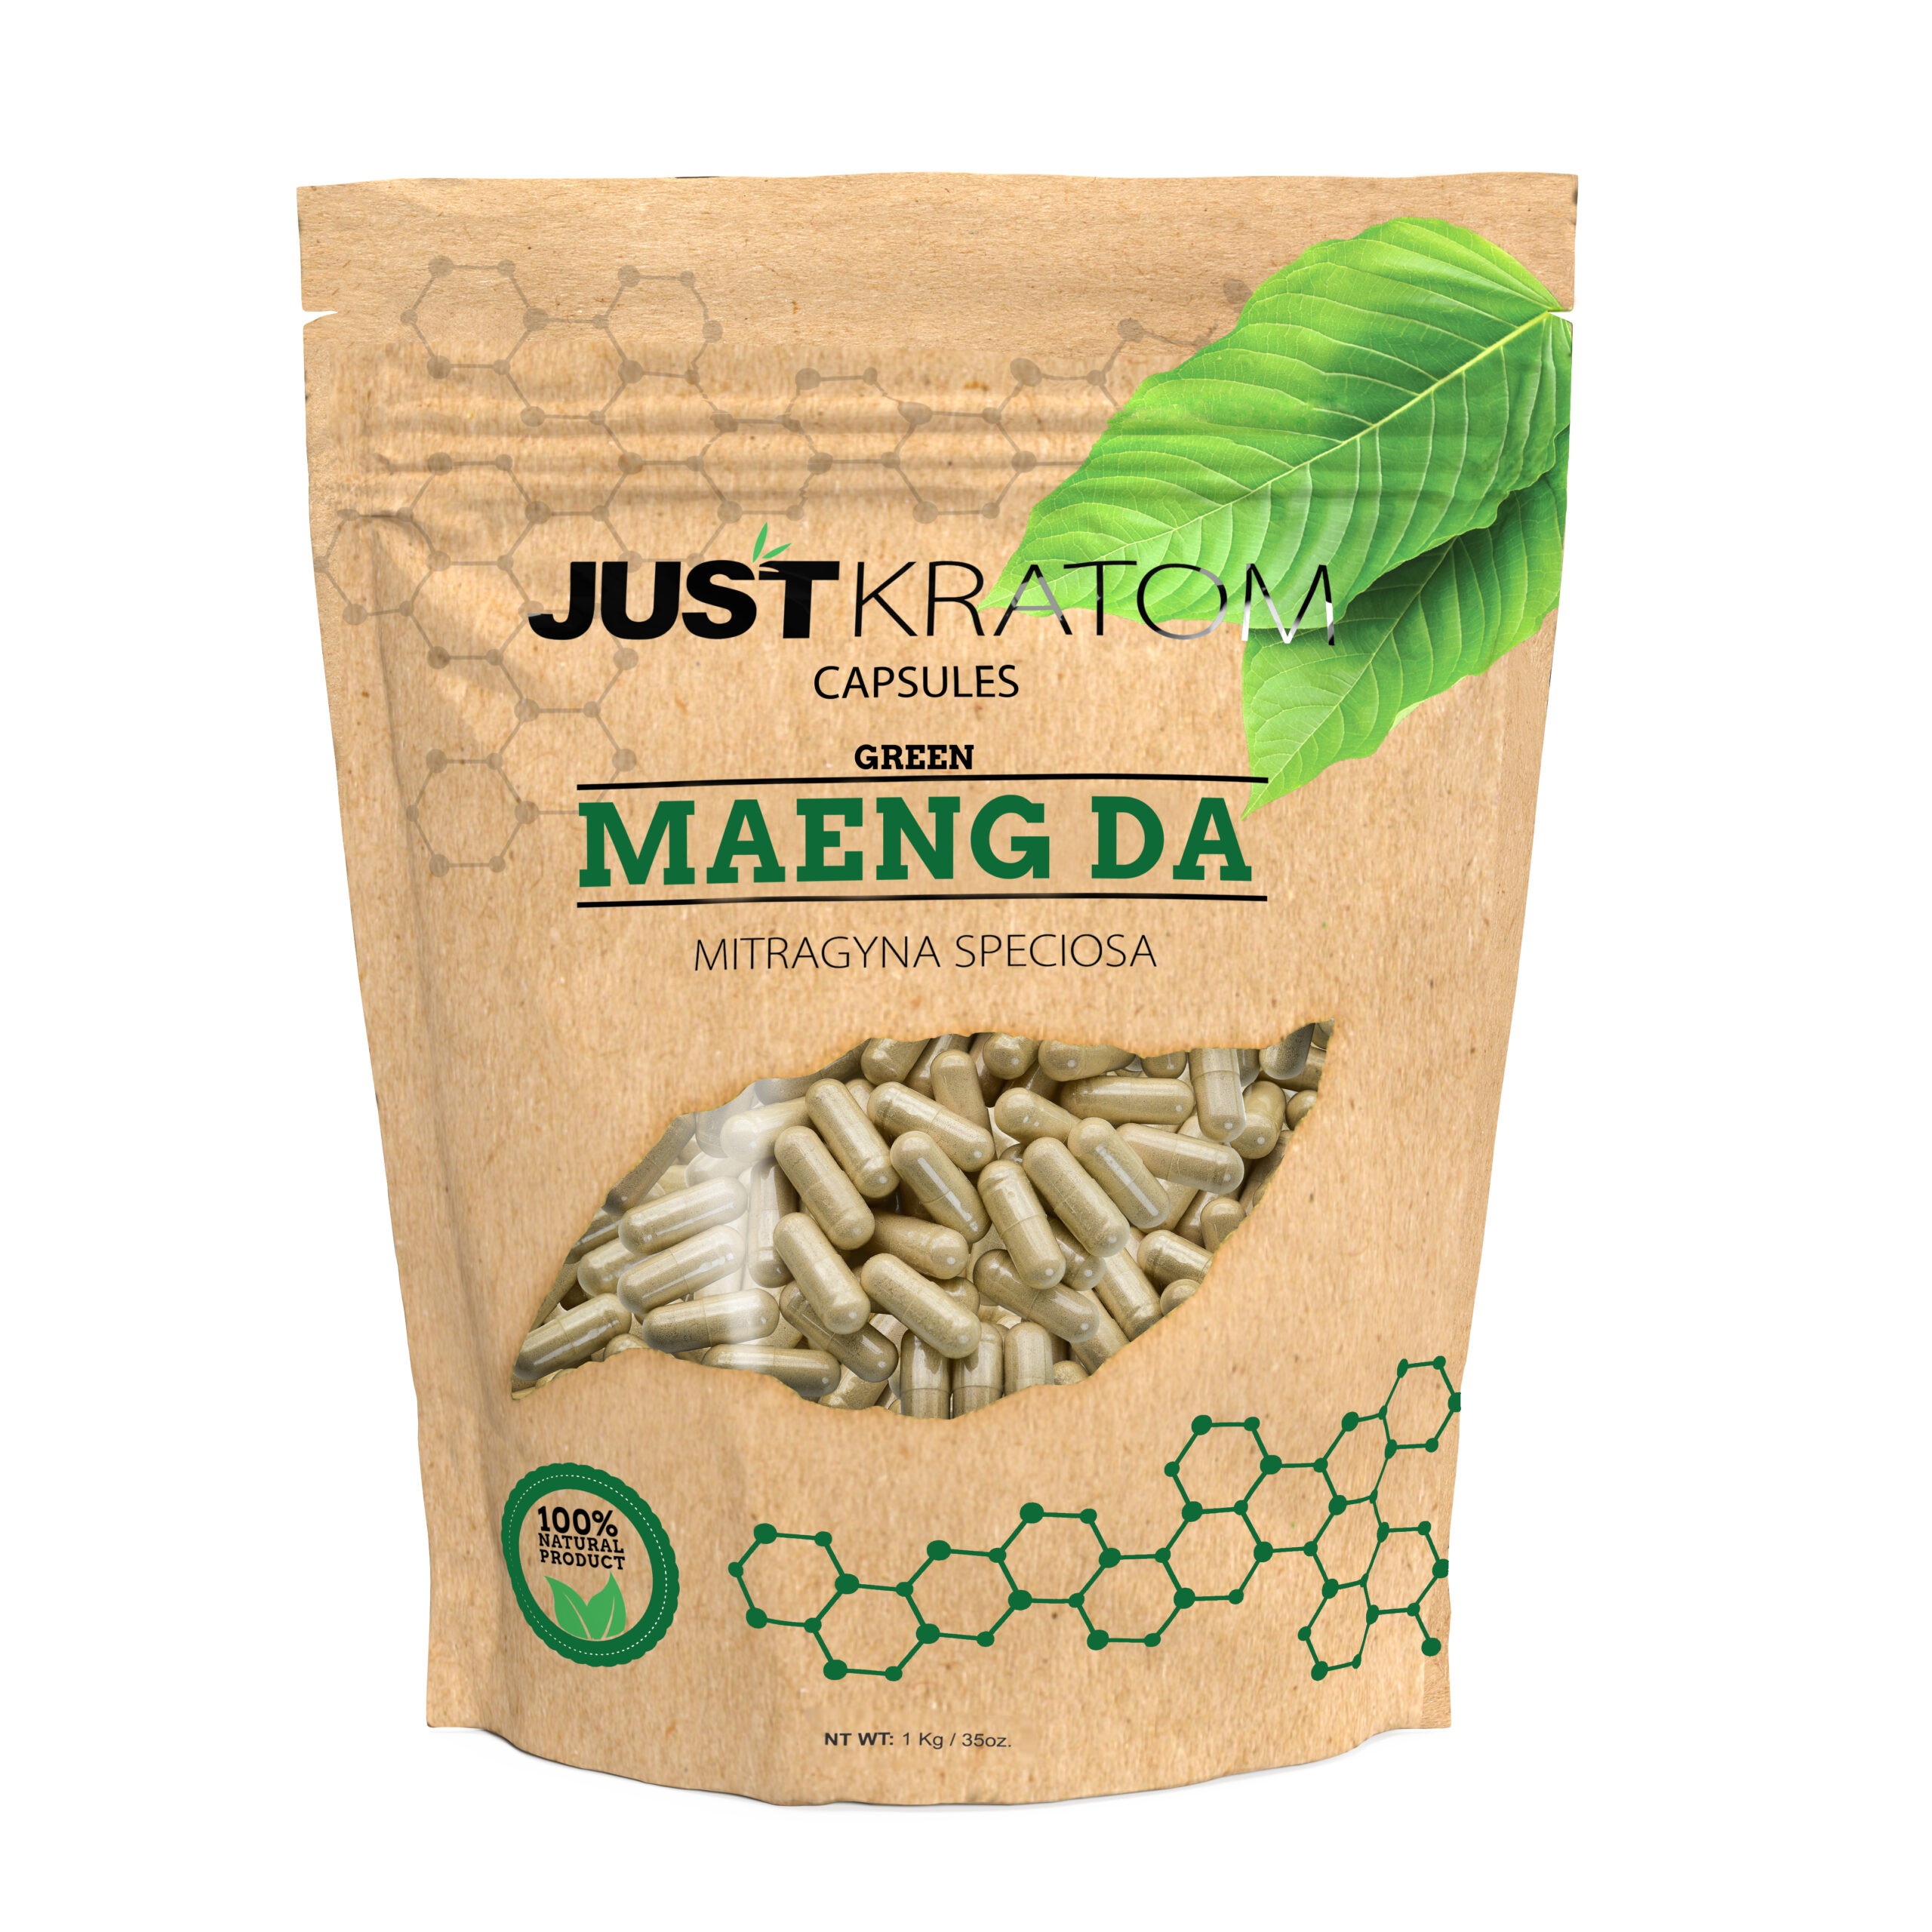 Where To Buy Kratom Supplement